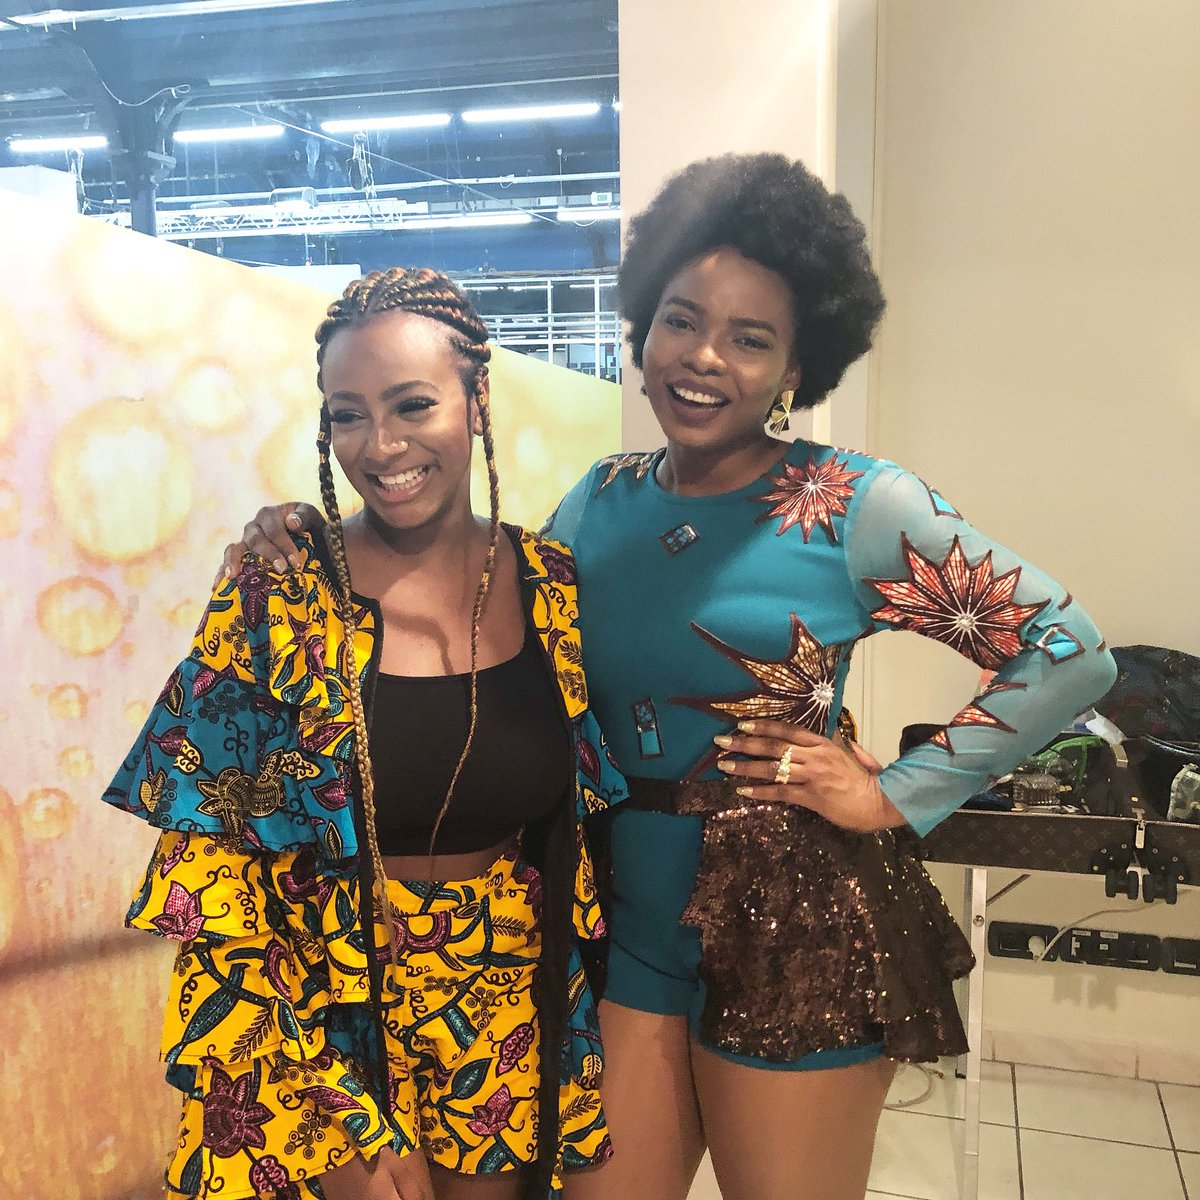 Mama Africa @YemiAladee 💛 Strong women lift each other up! 💪🏾 #AfricanQueen